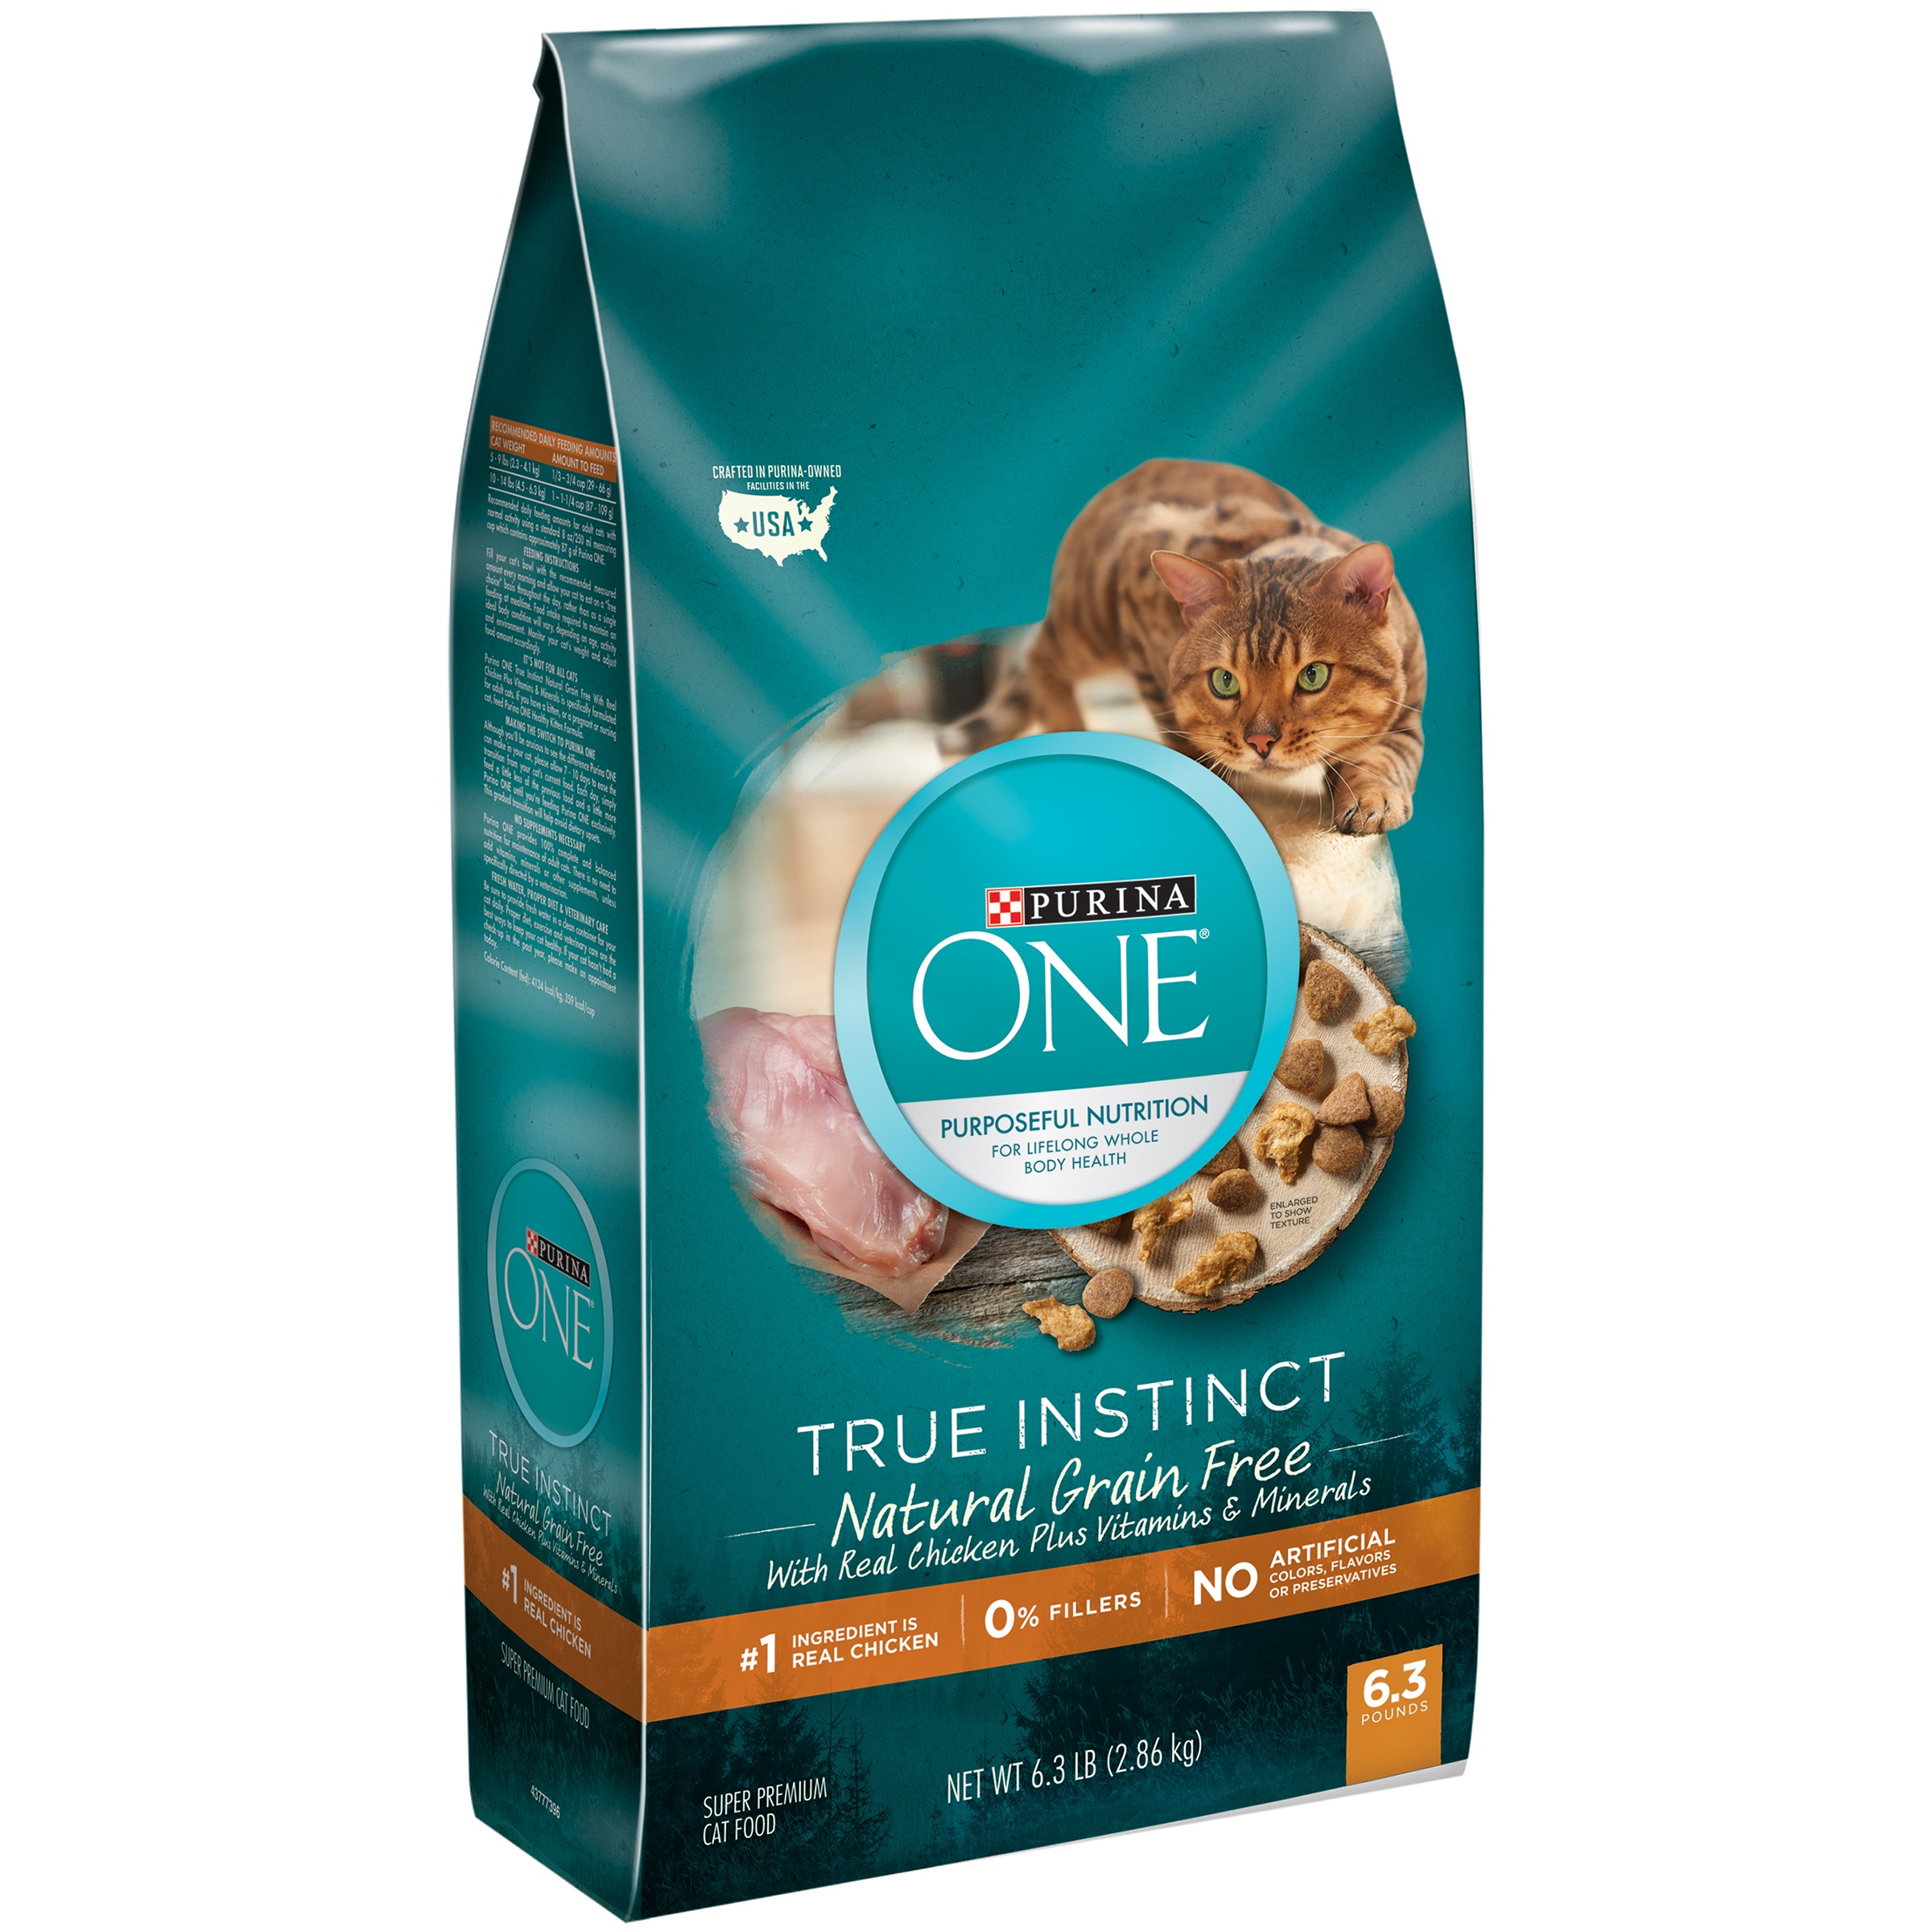 Purina ONE True Instinct Natural Grain-Free With Real Chicken Plus Vitamins & Minerals Adult Dry Cat Food, 6.3 lb